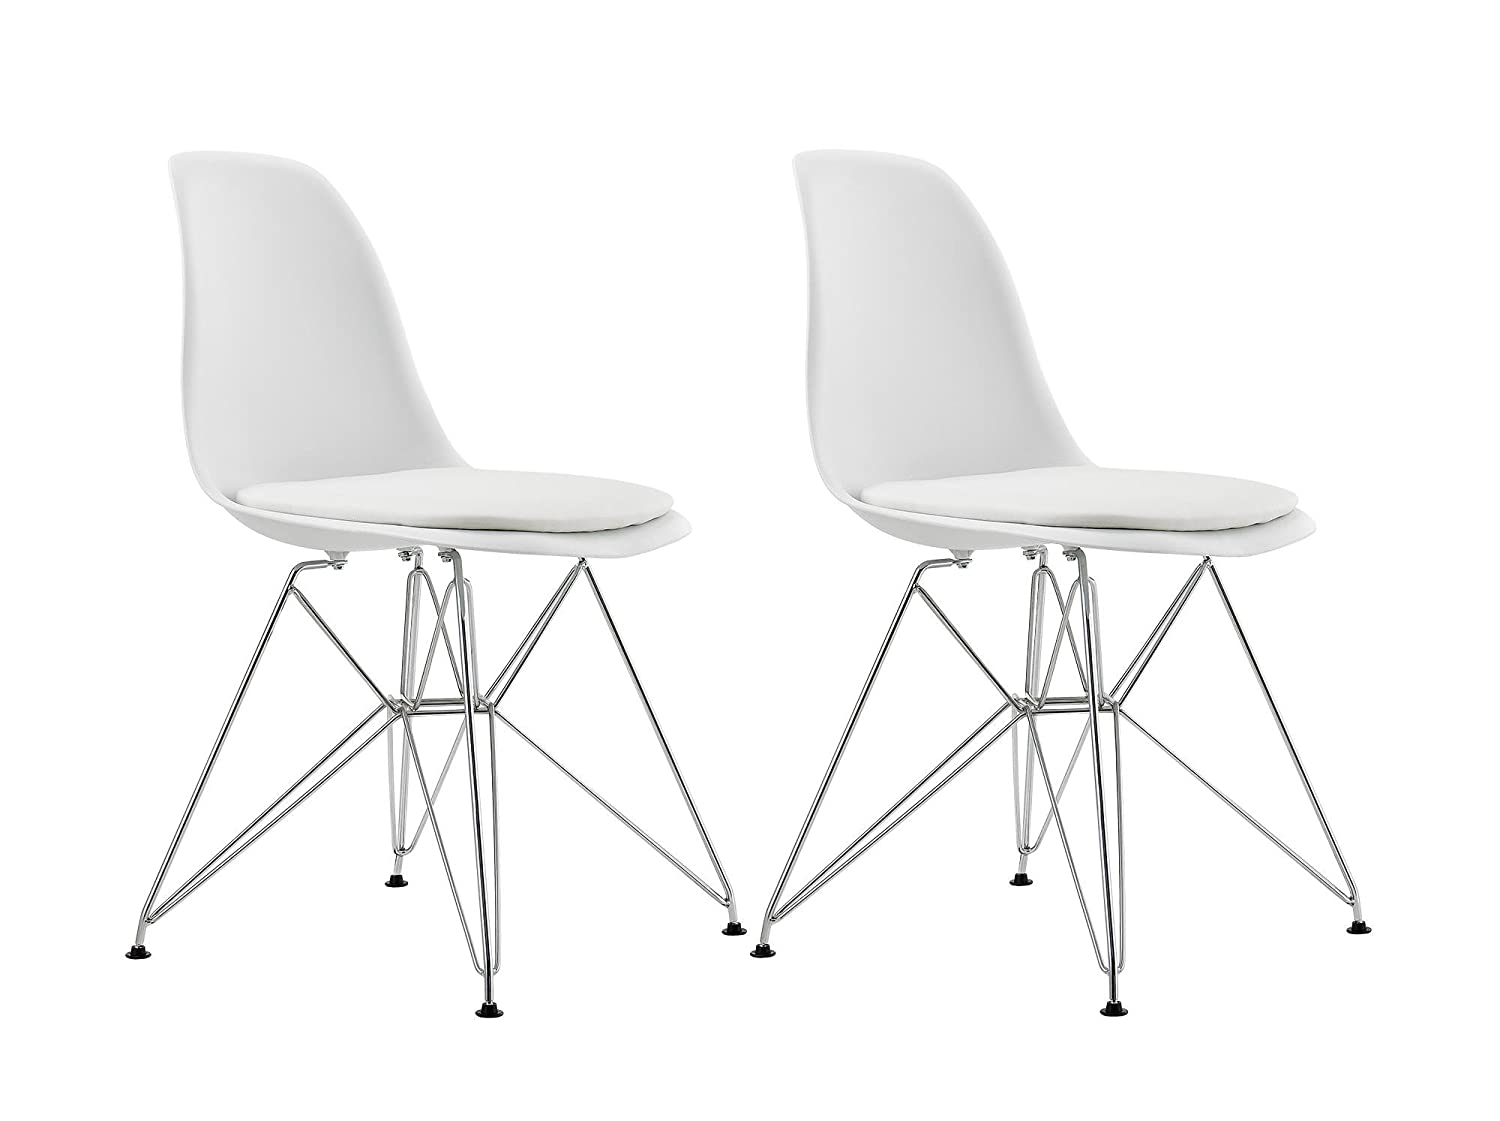 DHP Mid Century Modern Molded Chair with Upholstered Seat - Set of 2 - White